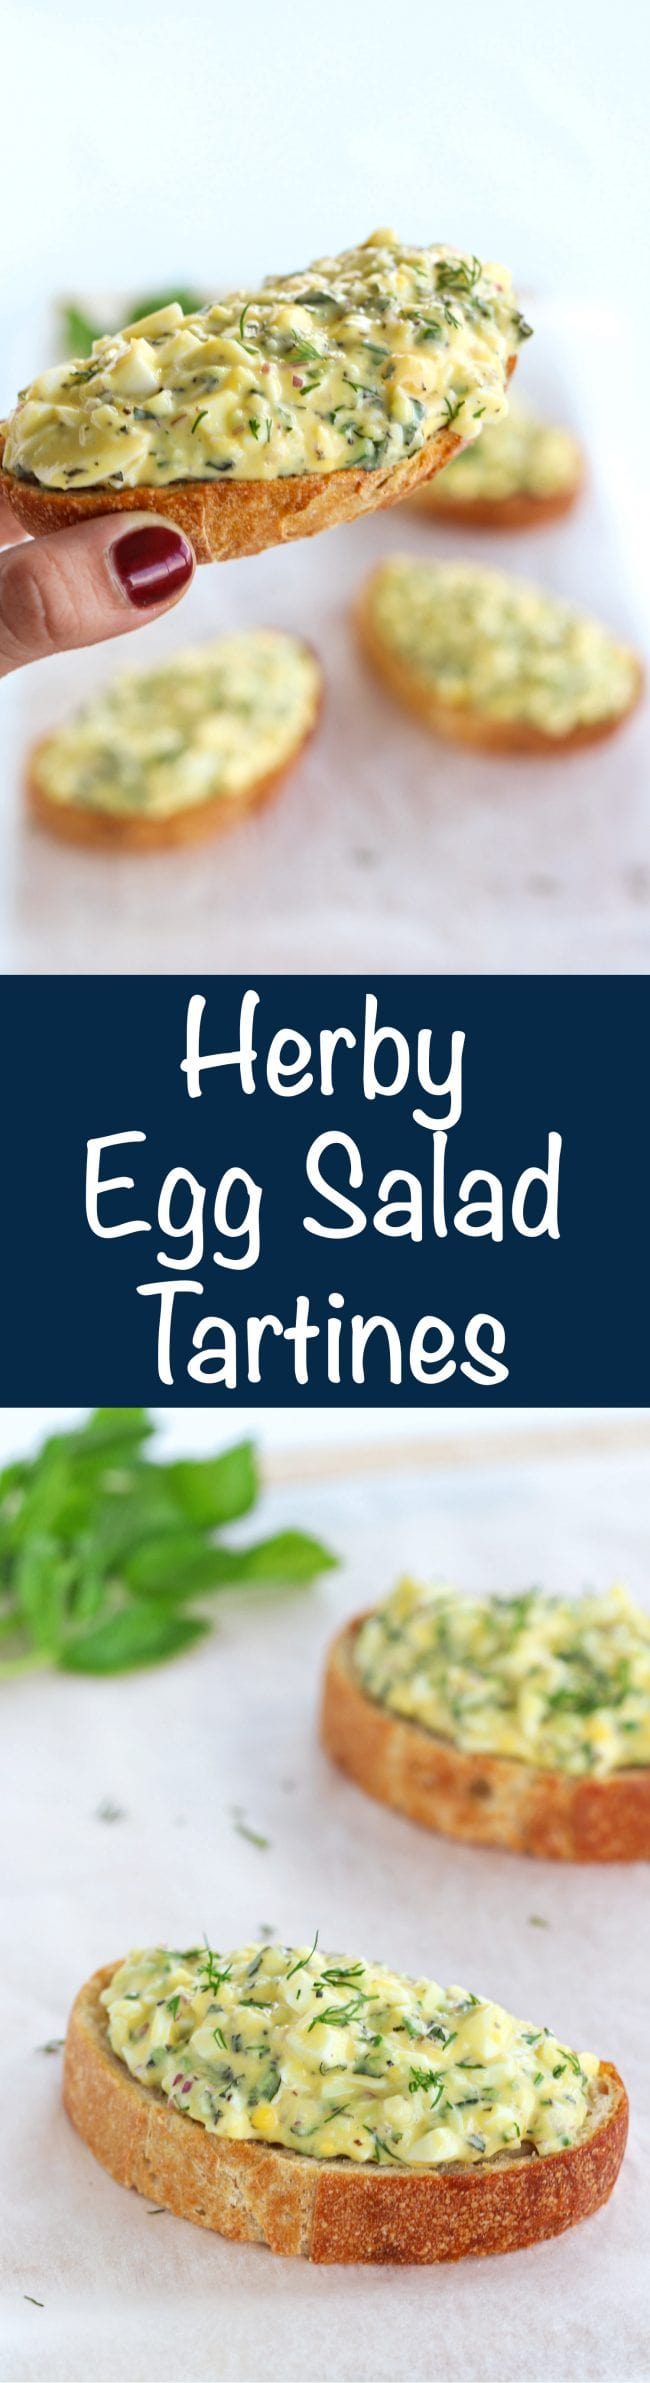 Herby Egg Salad Tartines on a white nonstick cooking paper background with mint leaves with stem in the back. Hand is holding up an egg salad tartine as if ready to take a bite.